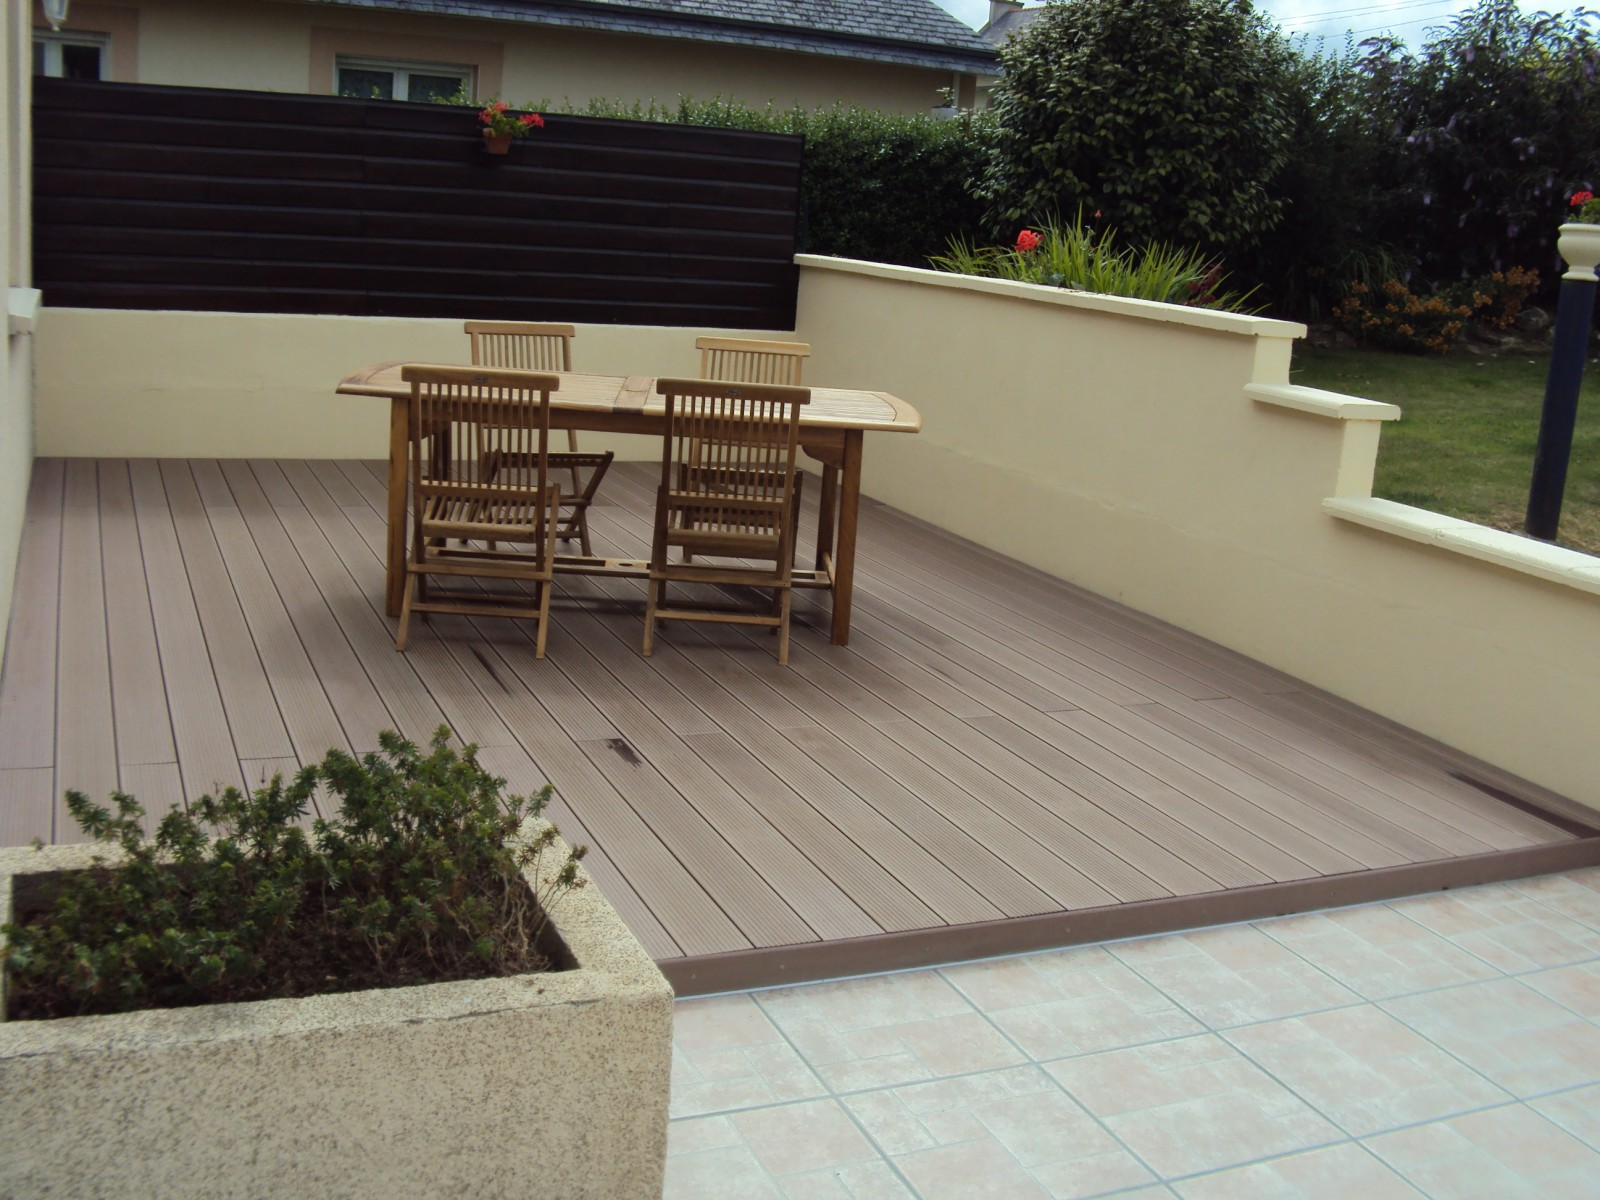 Lames de rev tement terrasse composite - Revetement terrasse composite ...